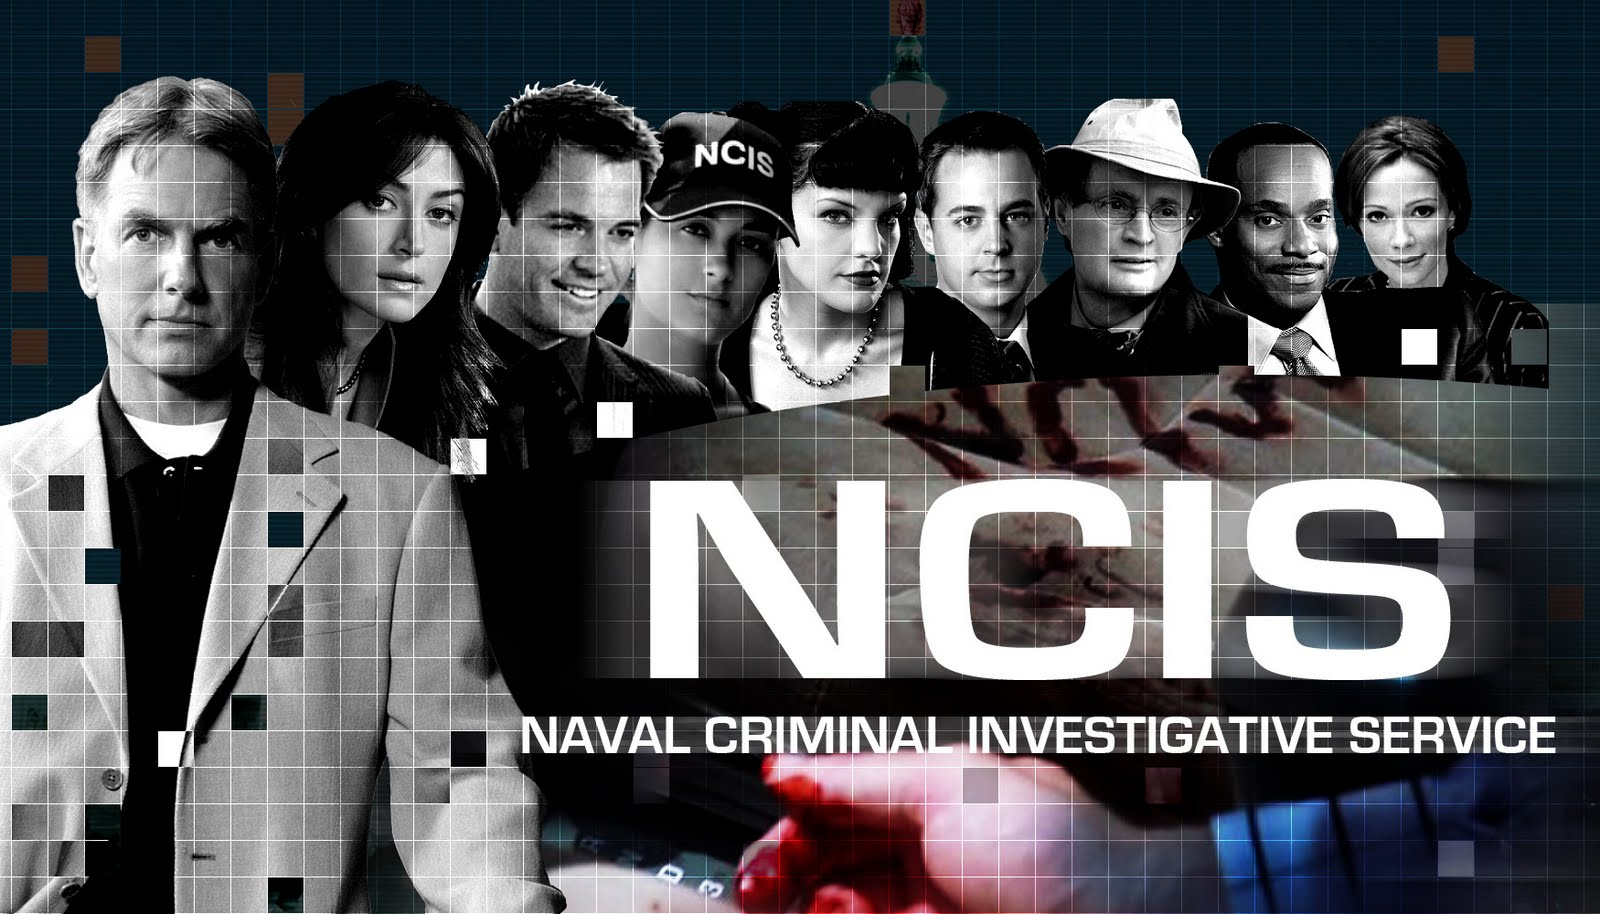 unless gibbs leaves it s not ncis without him jan 03 2010 flag reply